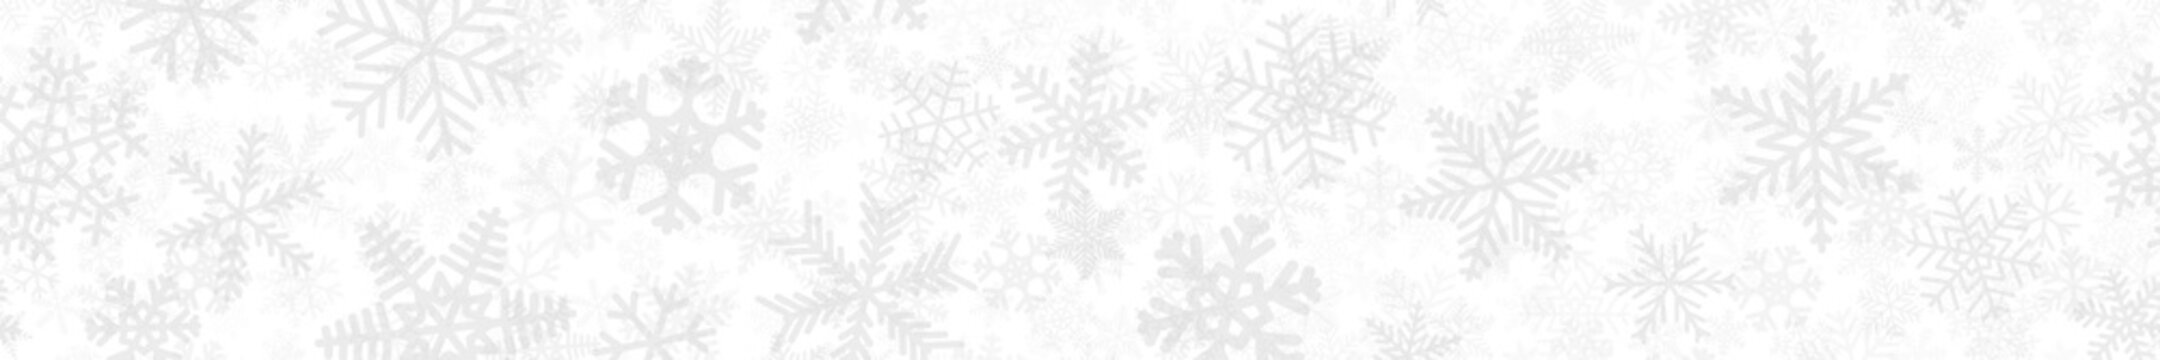 Christmas horizontal seamless banner of many layers of snowflakes of different shapes, sizes and transparency. Light gray on white